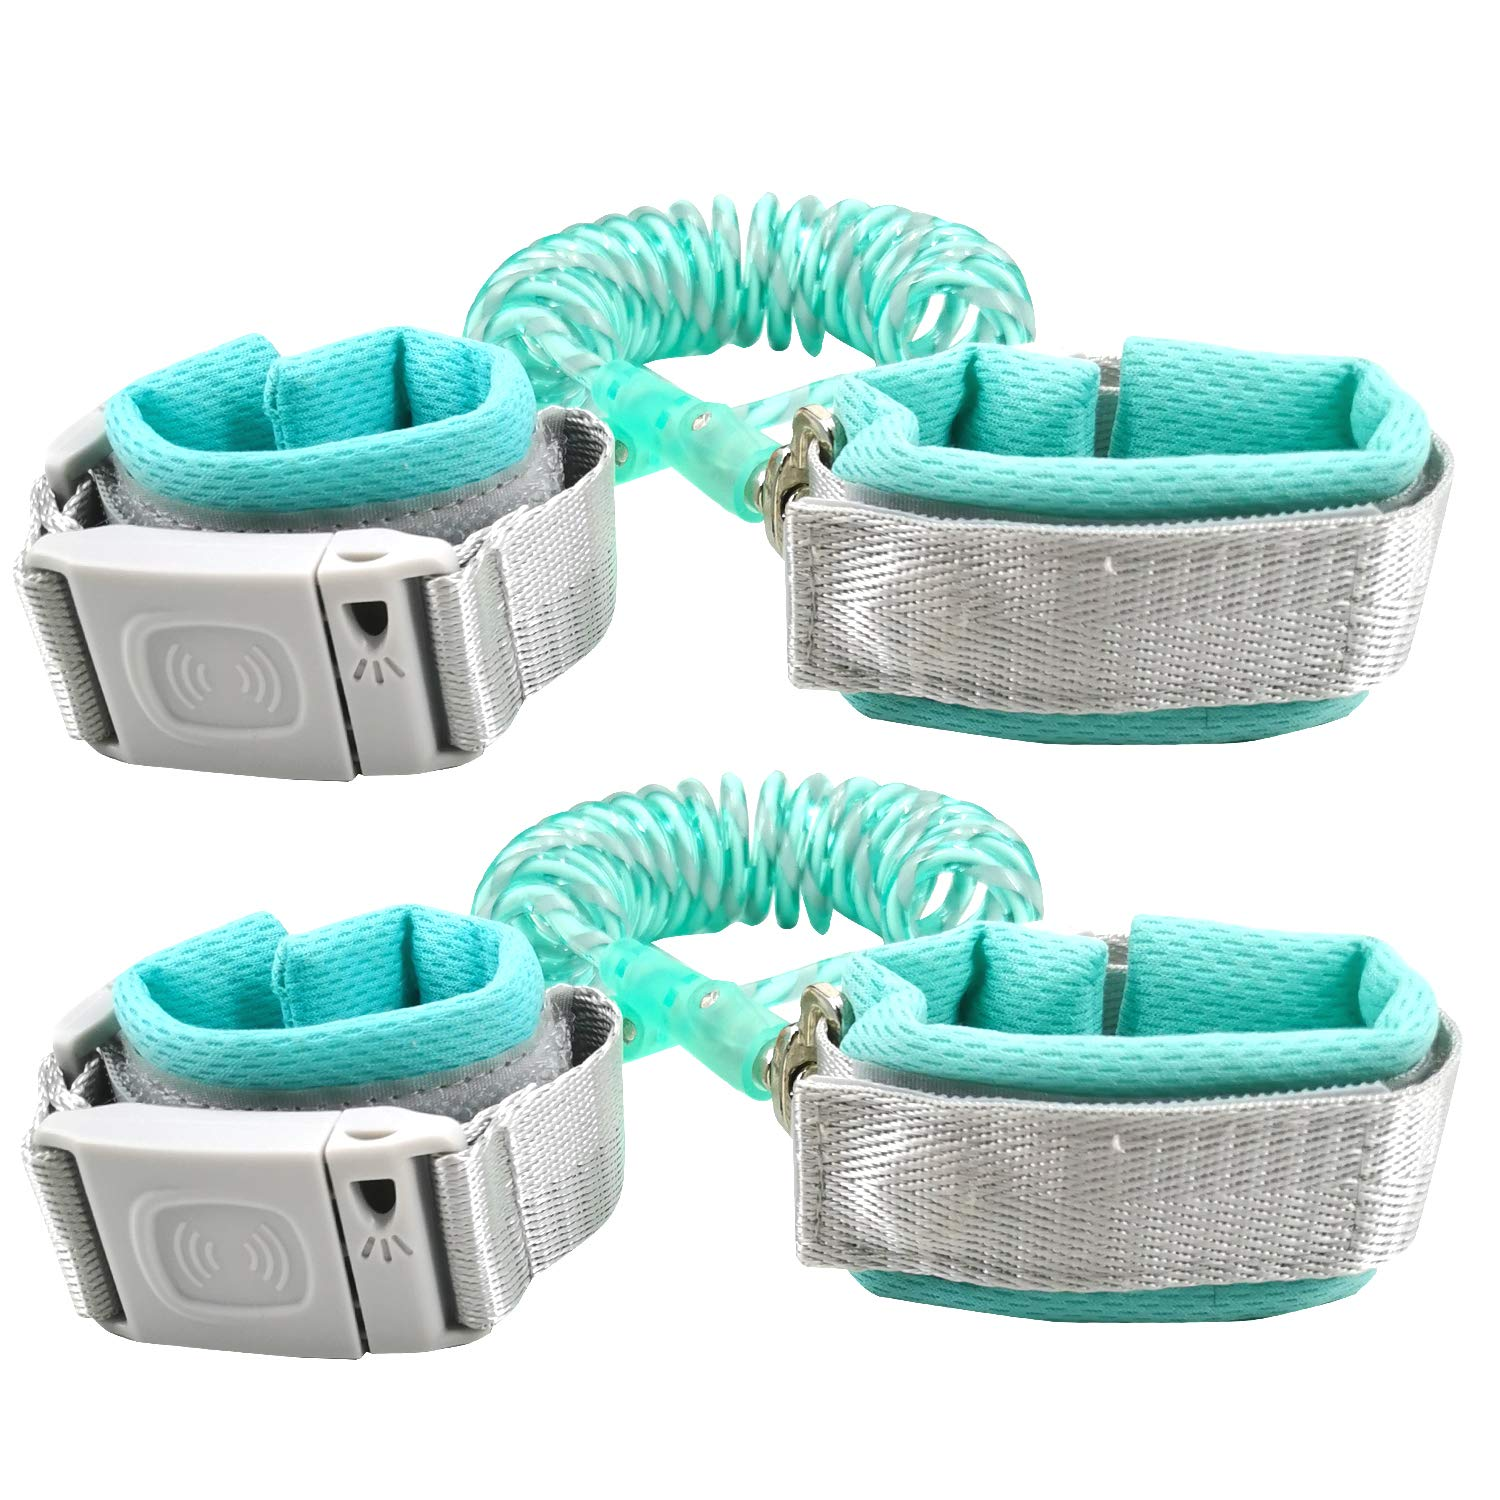 Child Harnesses & Leashes for Toddlers with Induction Lock - 2 Pack (4.9ft+8.2ft)